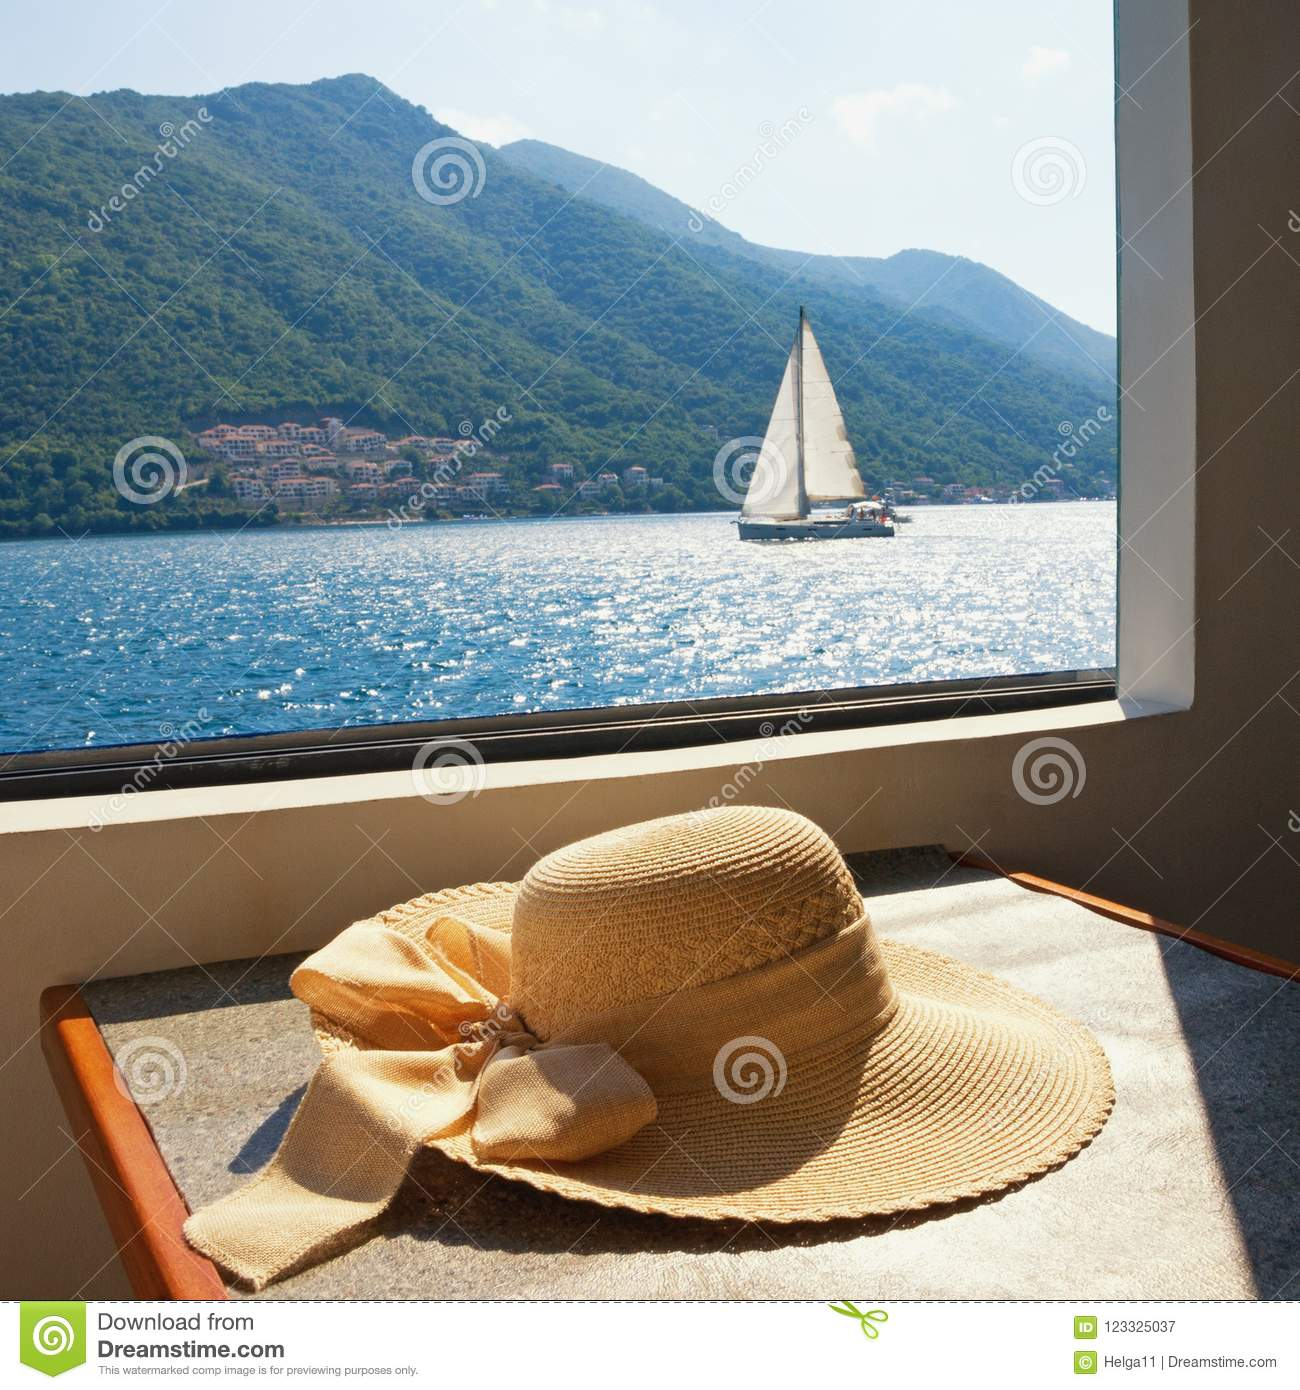 cb673ff0df5 Summer Vacation. Women`s Sun Hat On The Table Of Pleasure Ship Stock ...